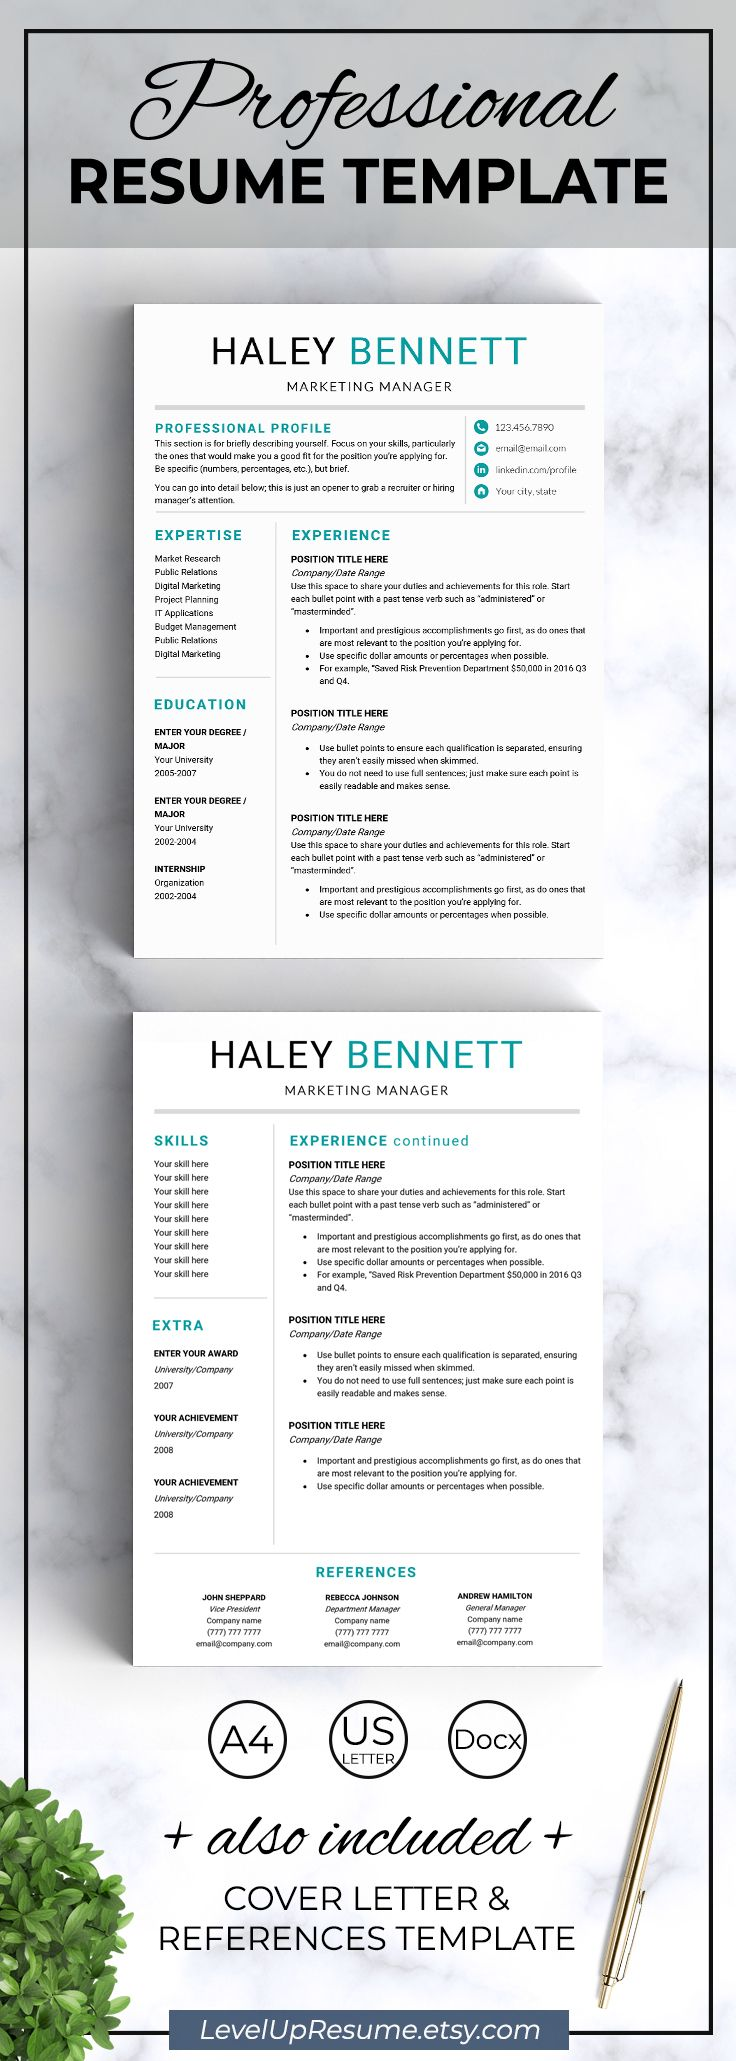 Word Resume Template 2007 Endearing Professional Resume Word A4 Resume Us Letter Cv Template For Word .